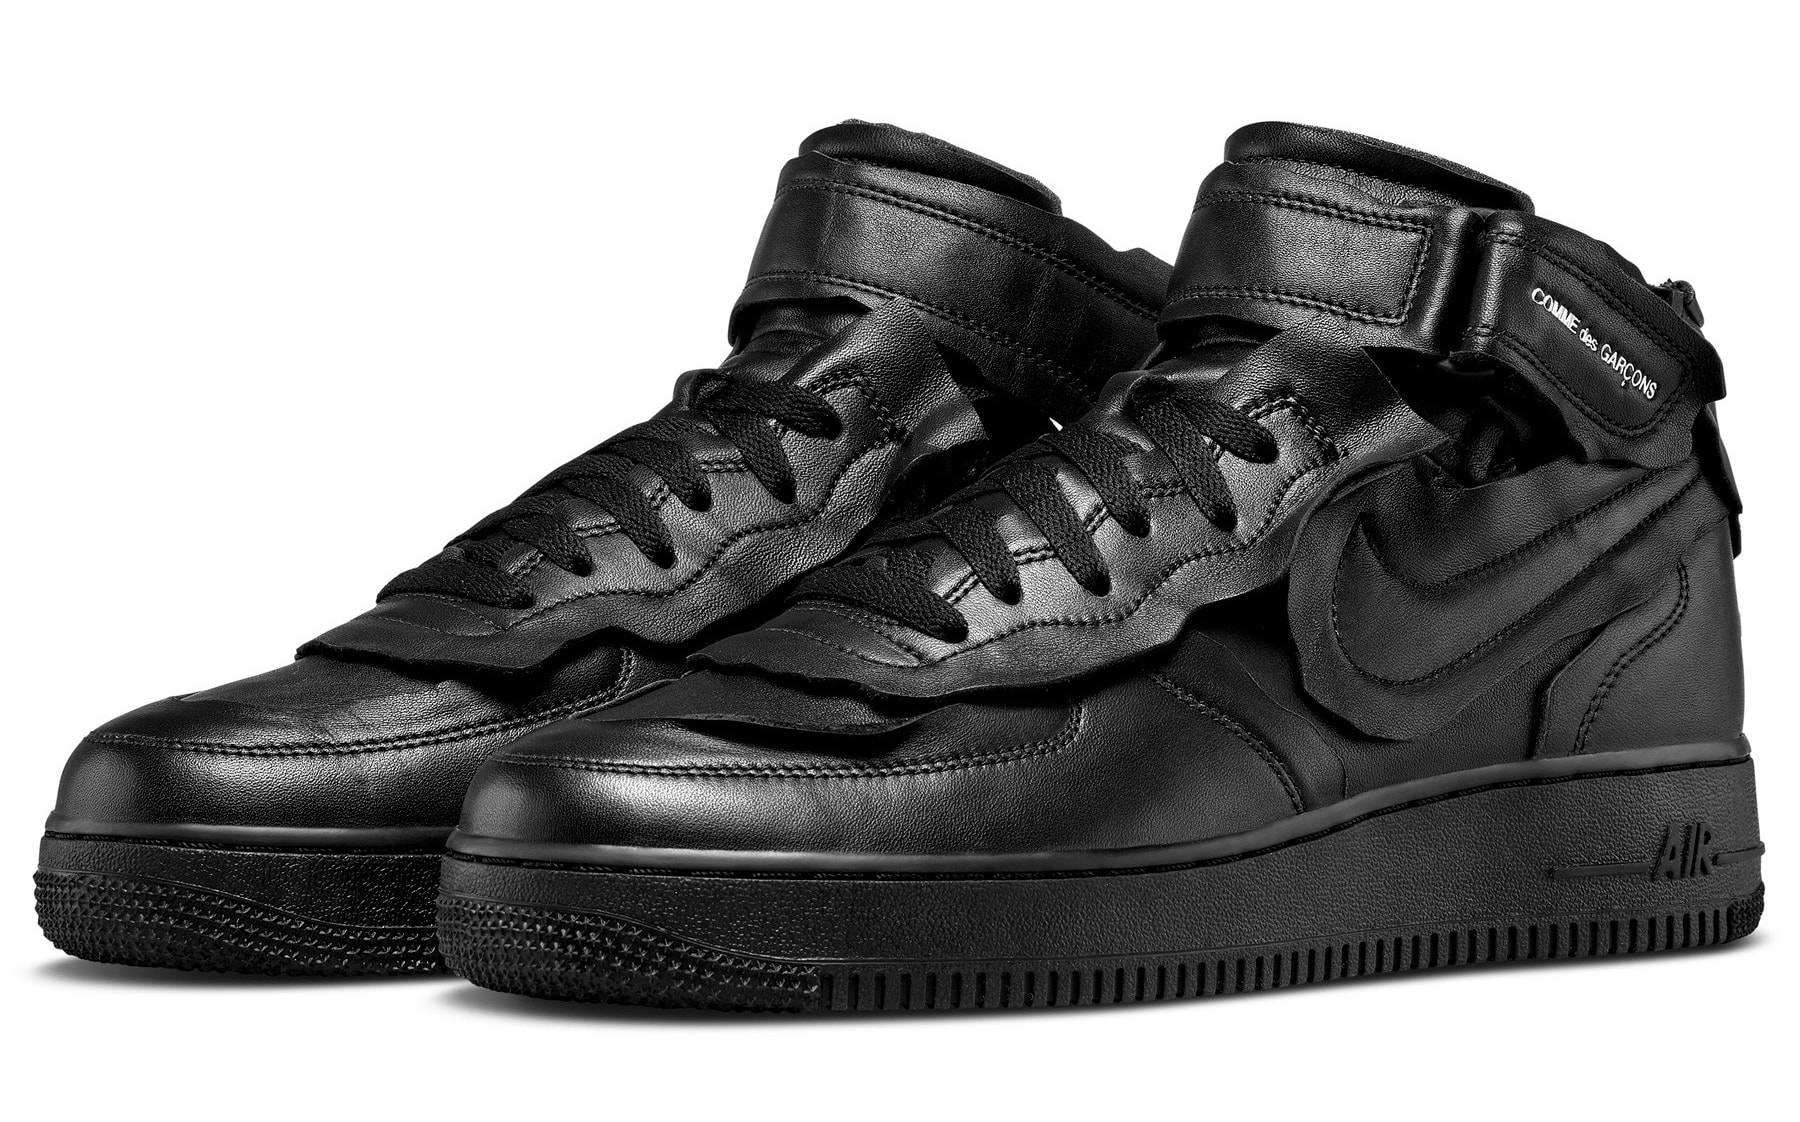 Comme Des Garcons x Nike Air Force 1 Mid 'Black' F/W 20 Pair